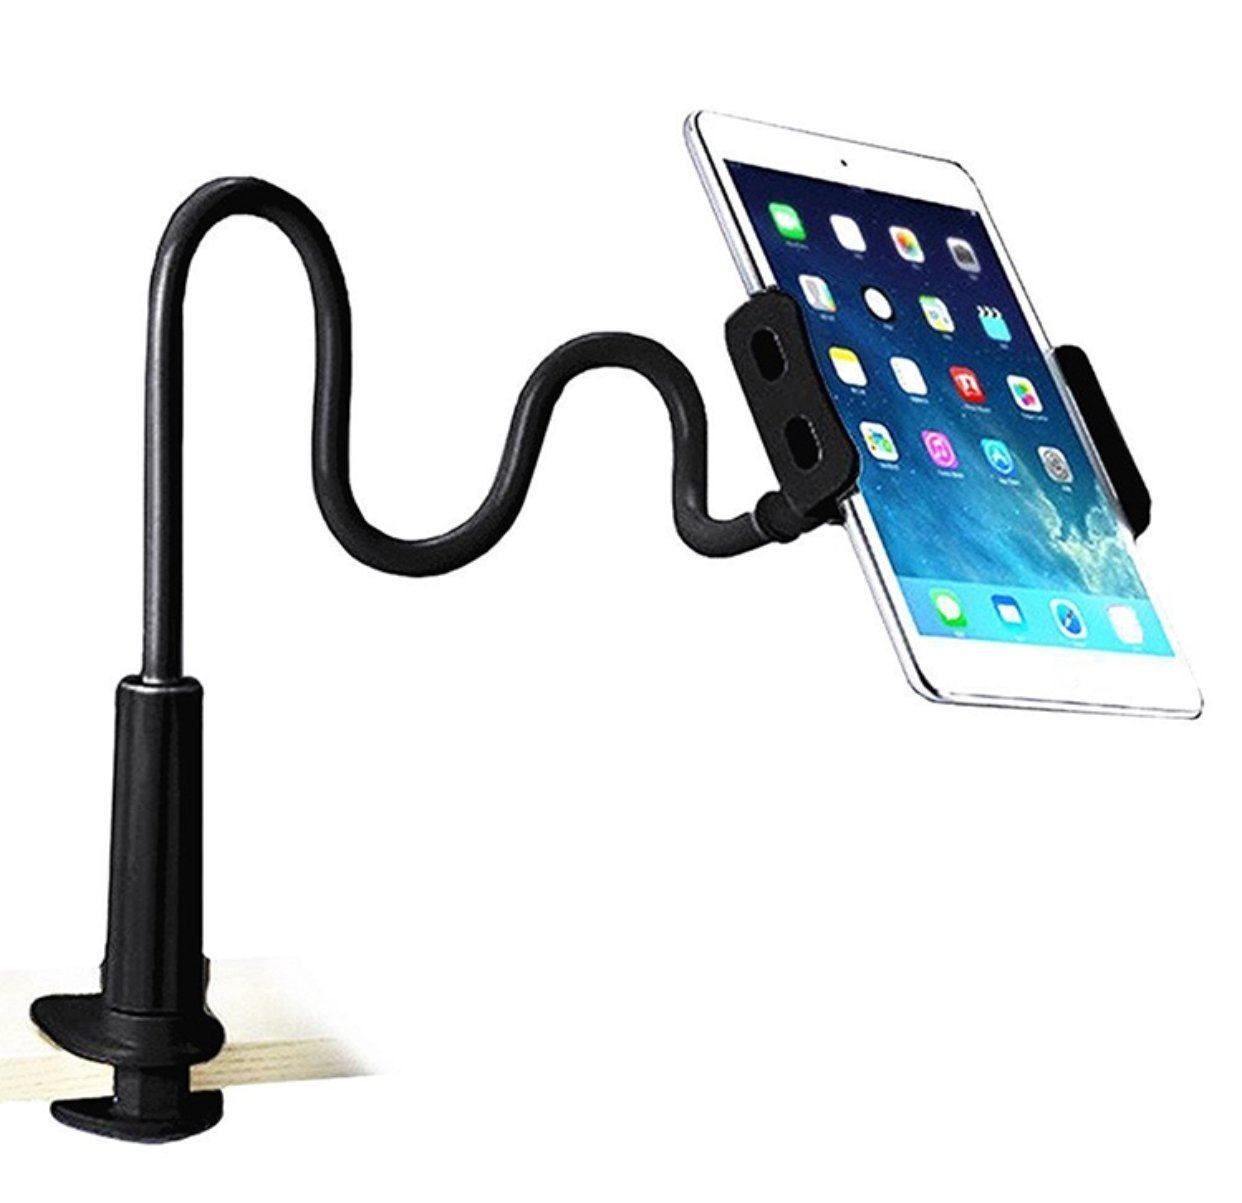 Gooseneck Phone and Tablet Stand, Tablet Mount Holder for iPad iPhone Series/Nintendo Switch/Samsung Galaxy Tabs/Amazon Kindle Fire HD and More (Black)